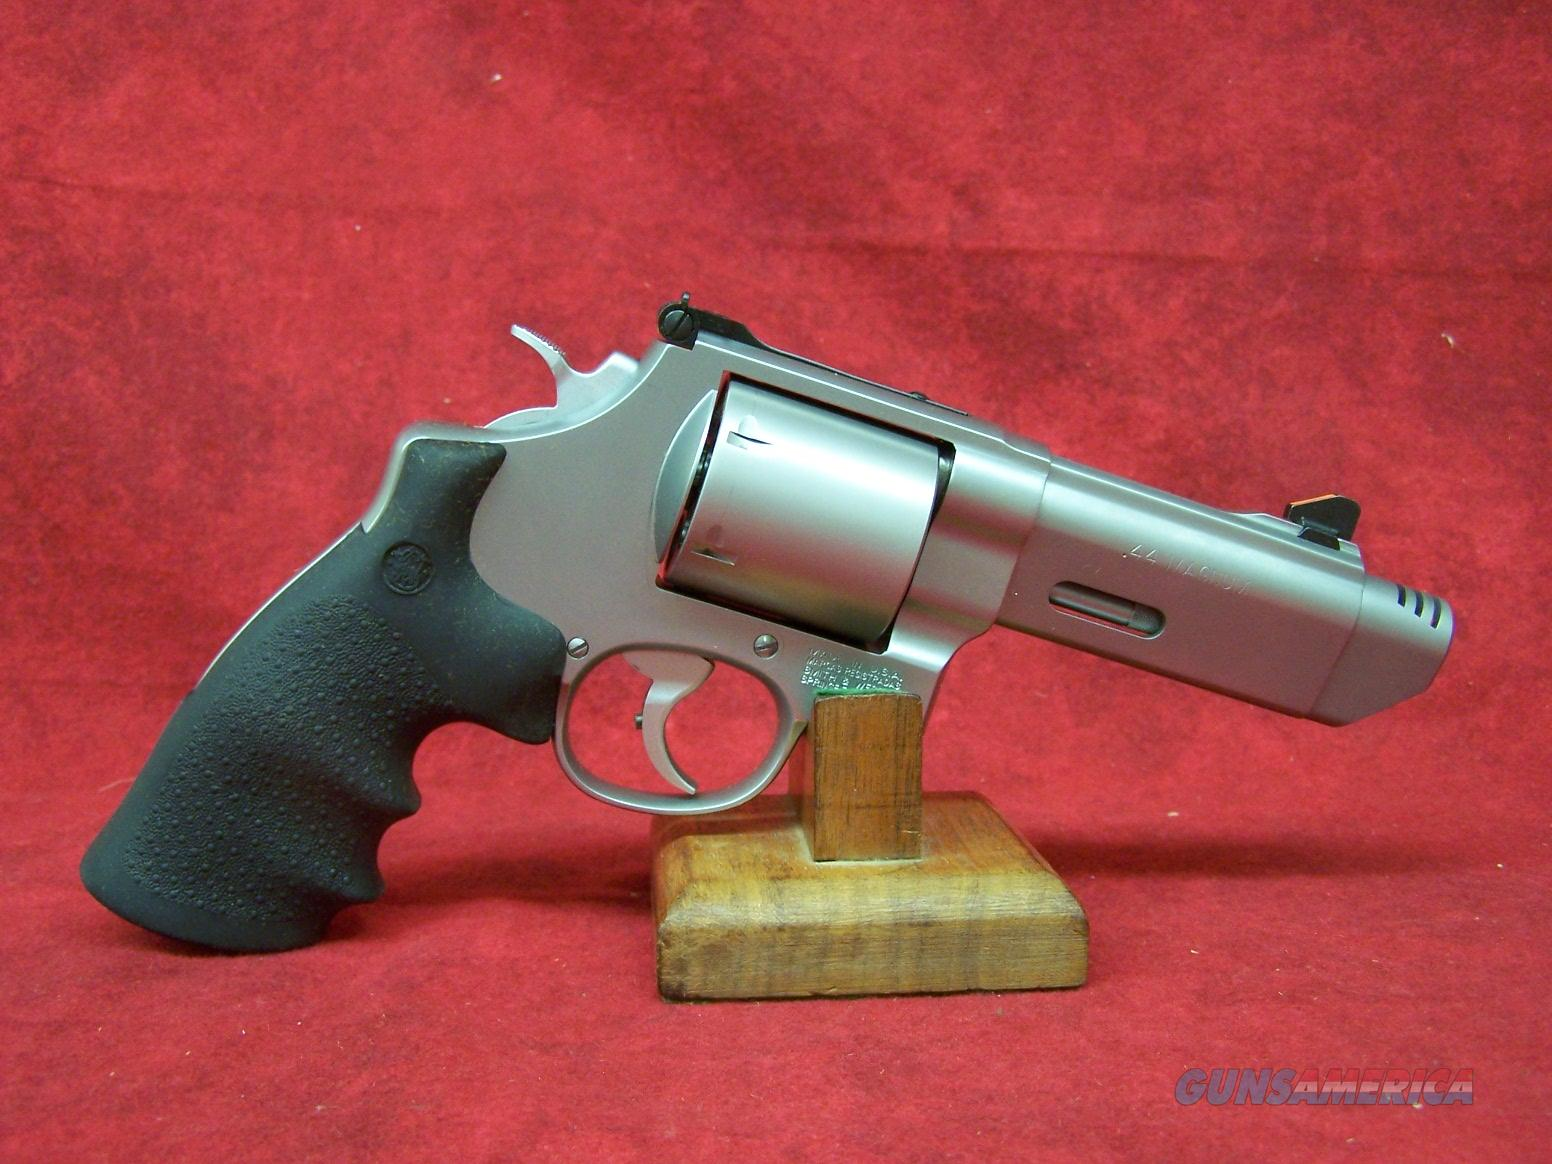 Smith & Wesson 629 V-COMP 44MAG 4.25'' SS (170137)  Guns > Pistols > Smith & Wesson Revolvers > Model 629